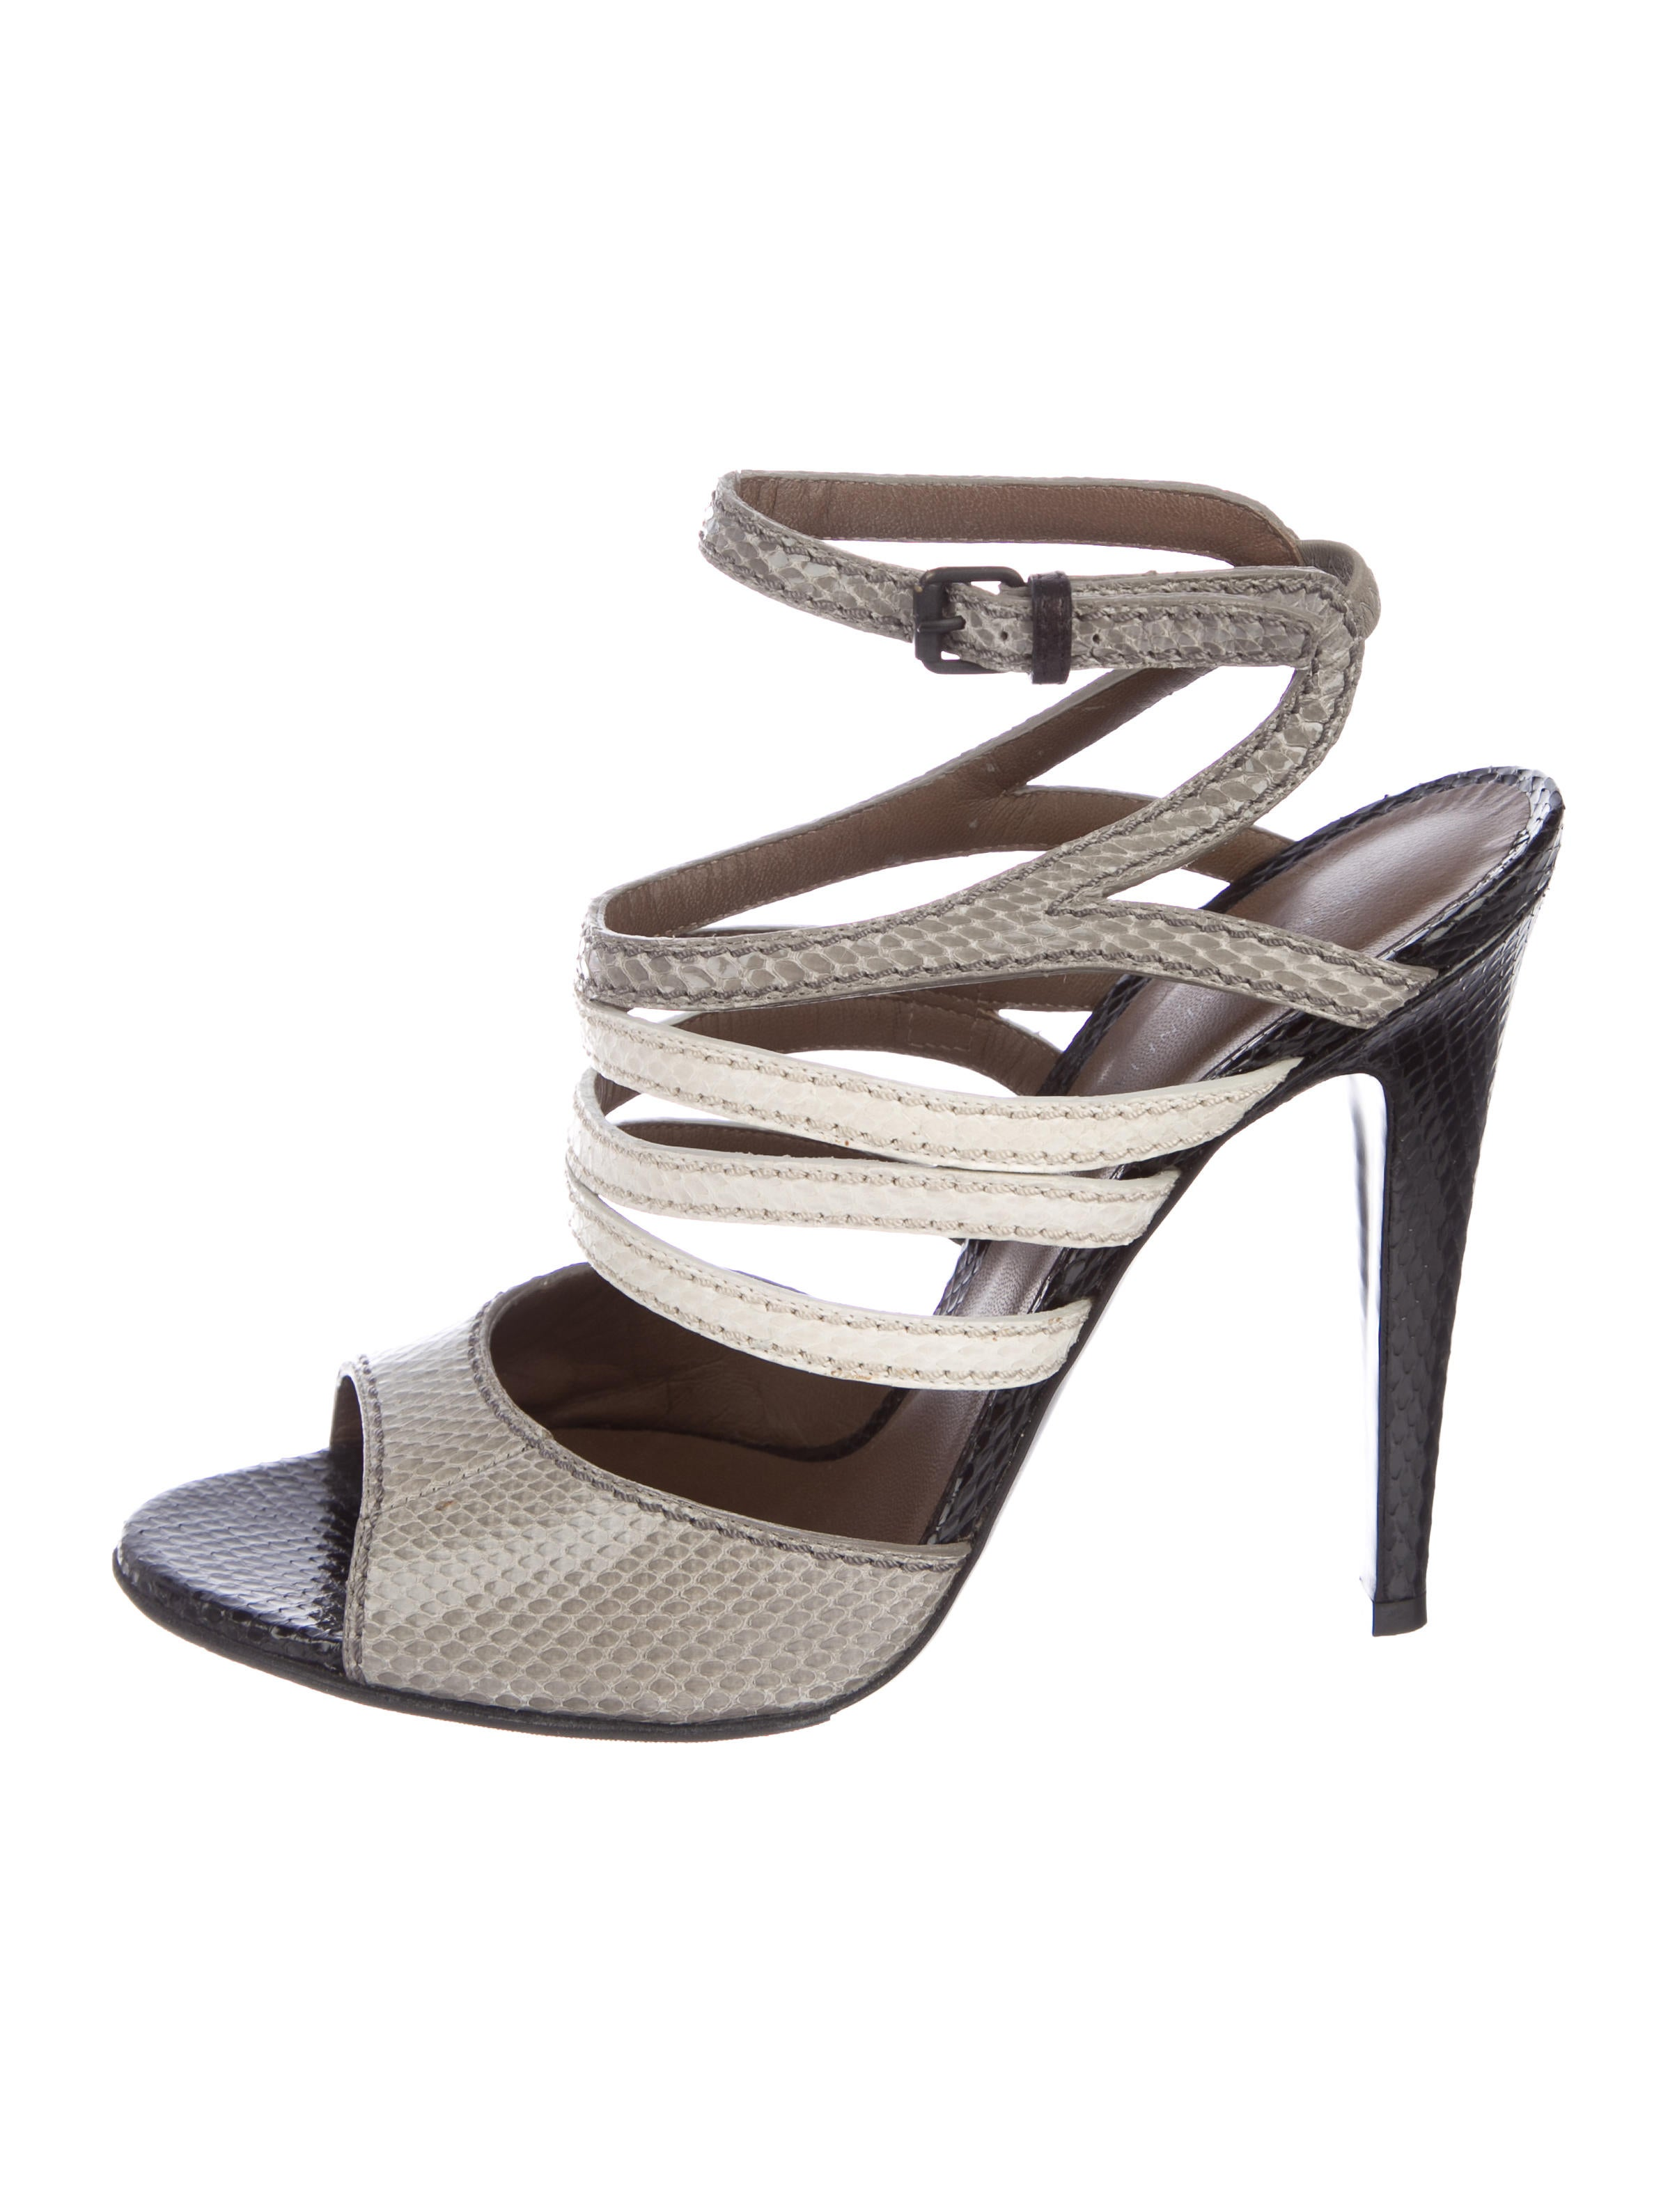 discount best Bottega Veneta Snakeskin Cage Sandals pick a best online discount lowest price cheap price outlet iawLJKza